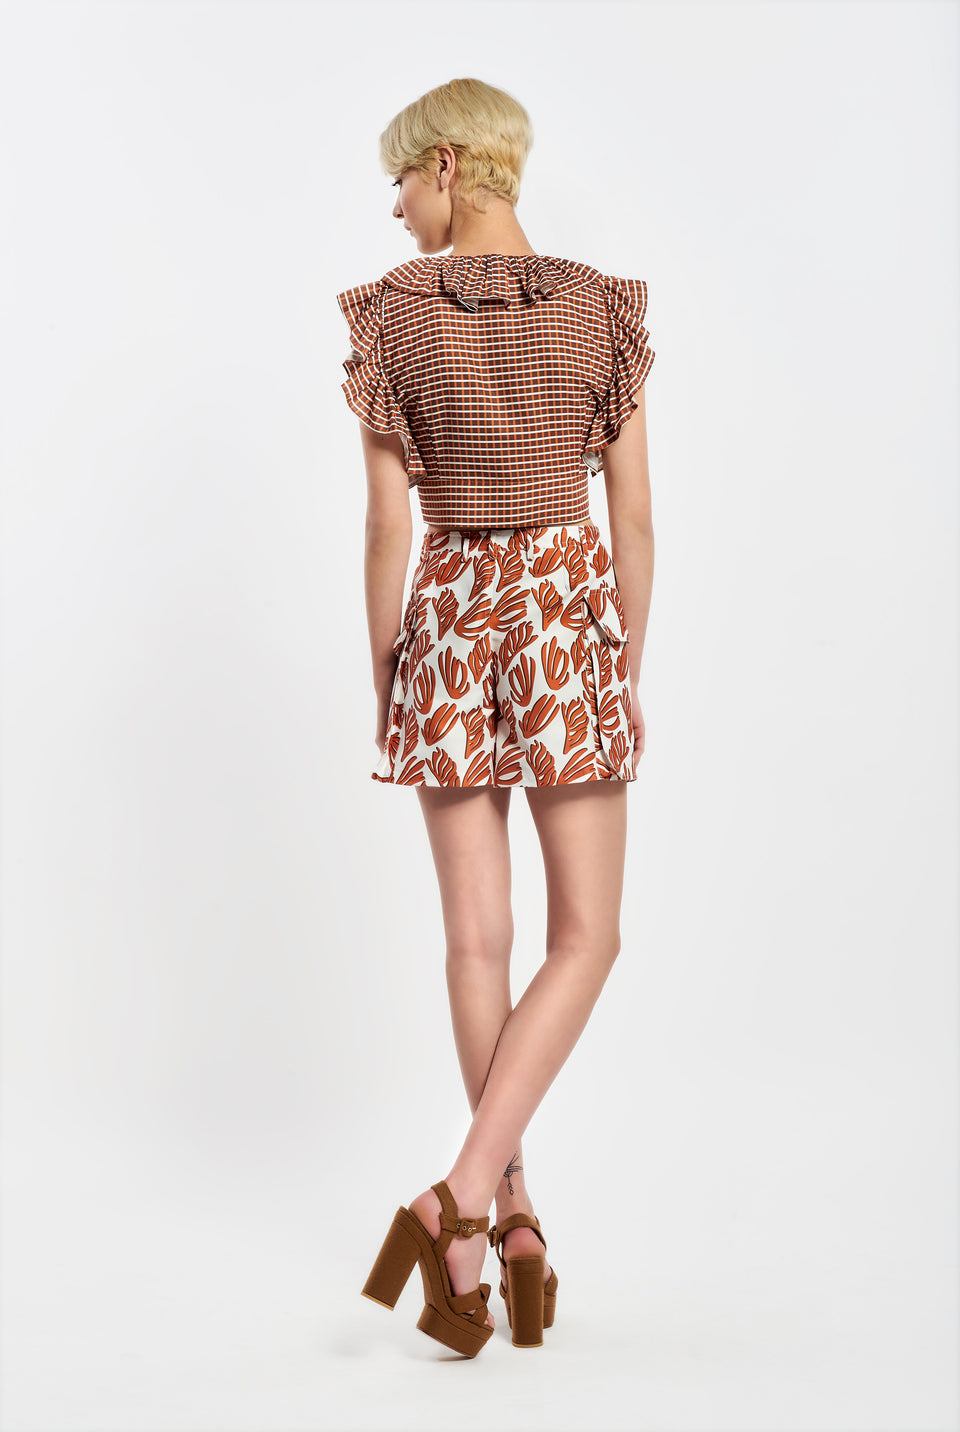 HIGH WAIST SHORTS IN CORAL PRINT WITH POCKETS HIGH WAIST SHORTS IN CORAL PRINT WITH POCKETS